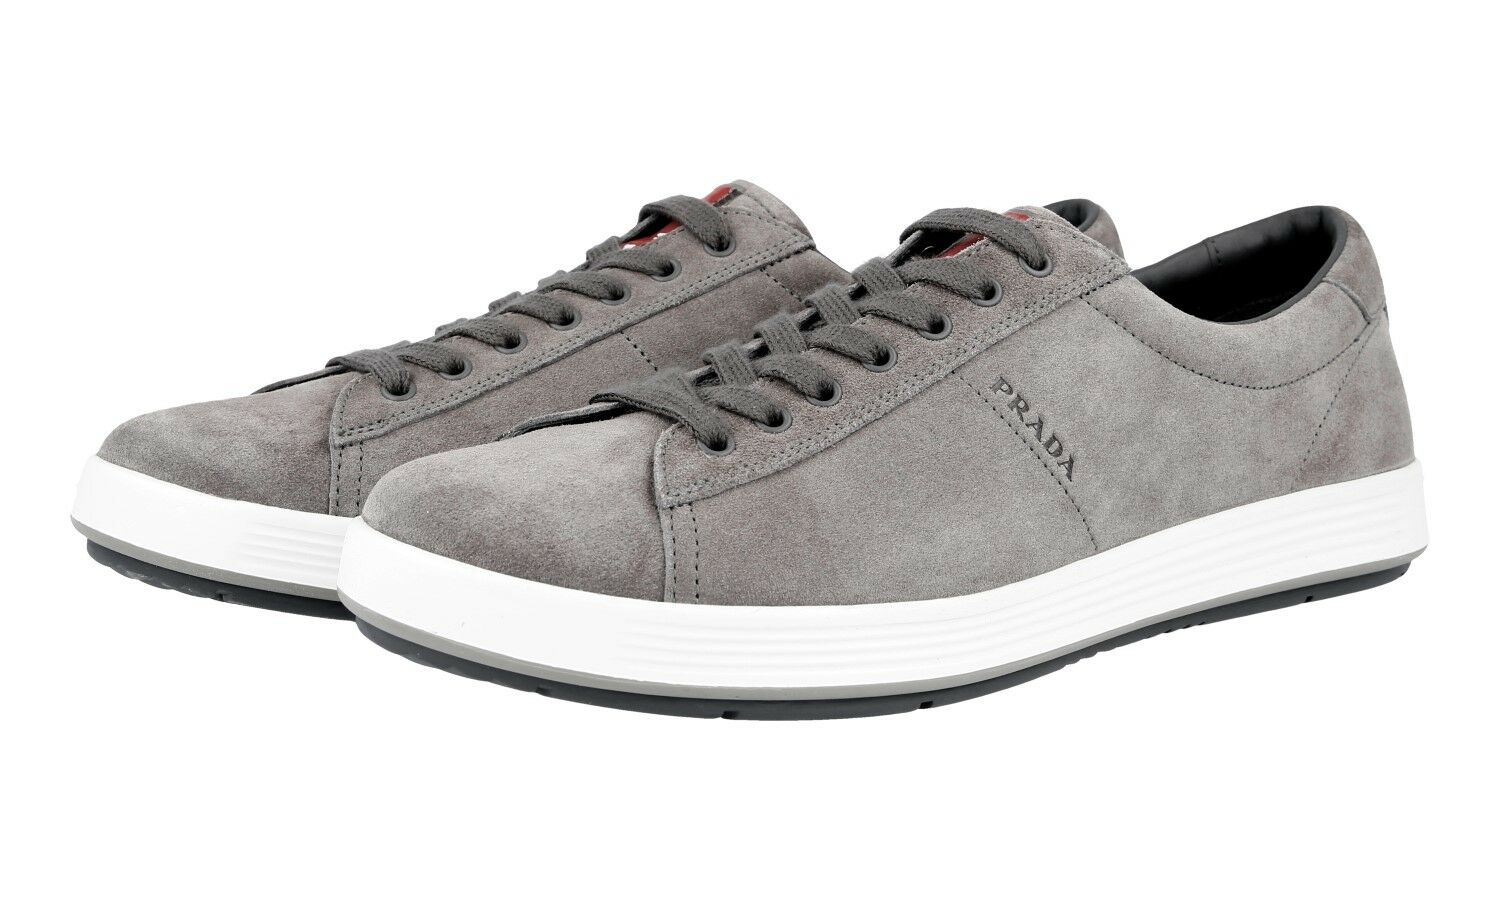 AUTHENTIC PRADA SNEAKERS SHOES 4E2860 GREY SUEDE NEW US 11